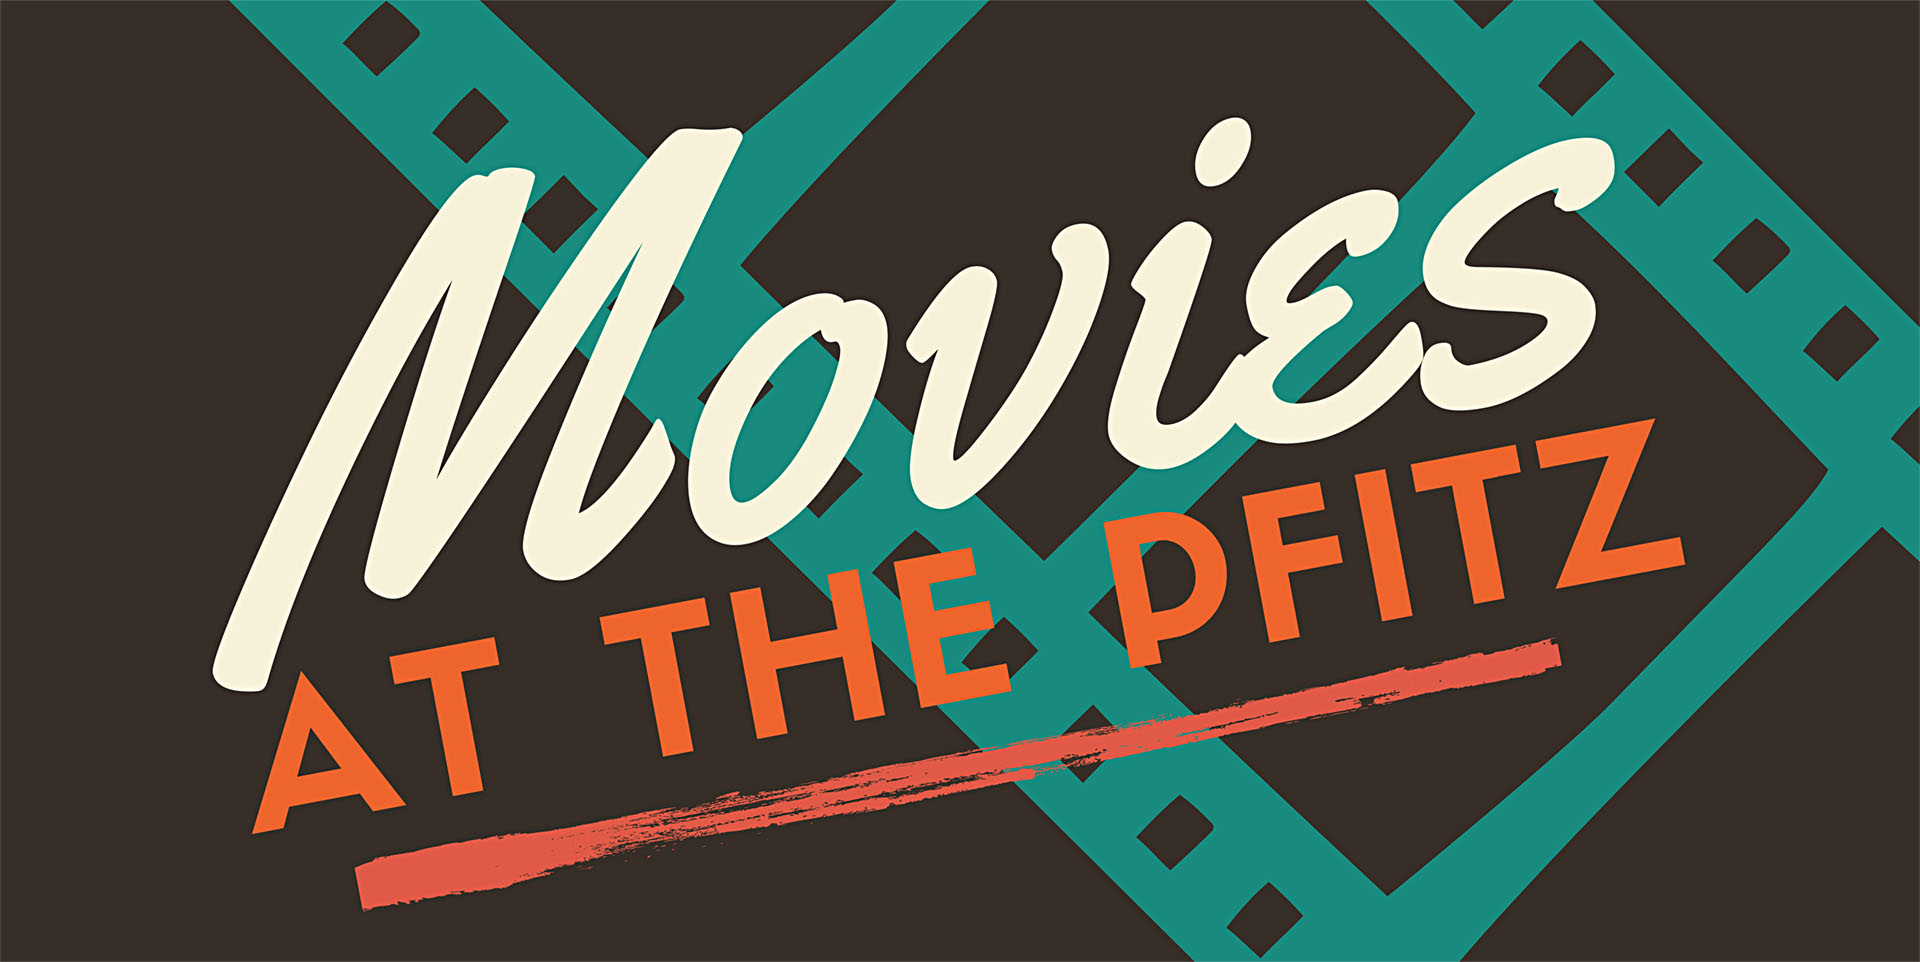 Movies at the Pfitz fundraiser supporting local non-profits